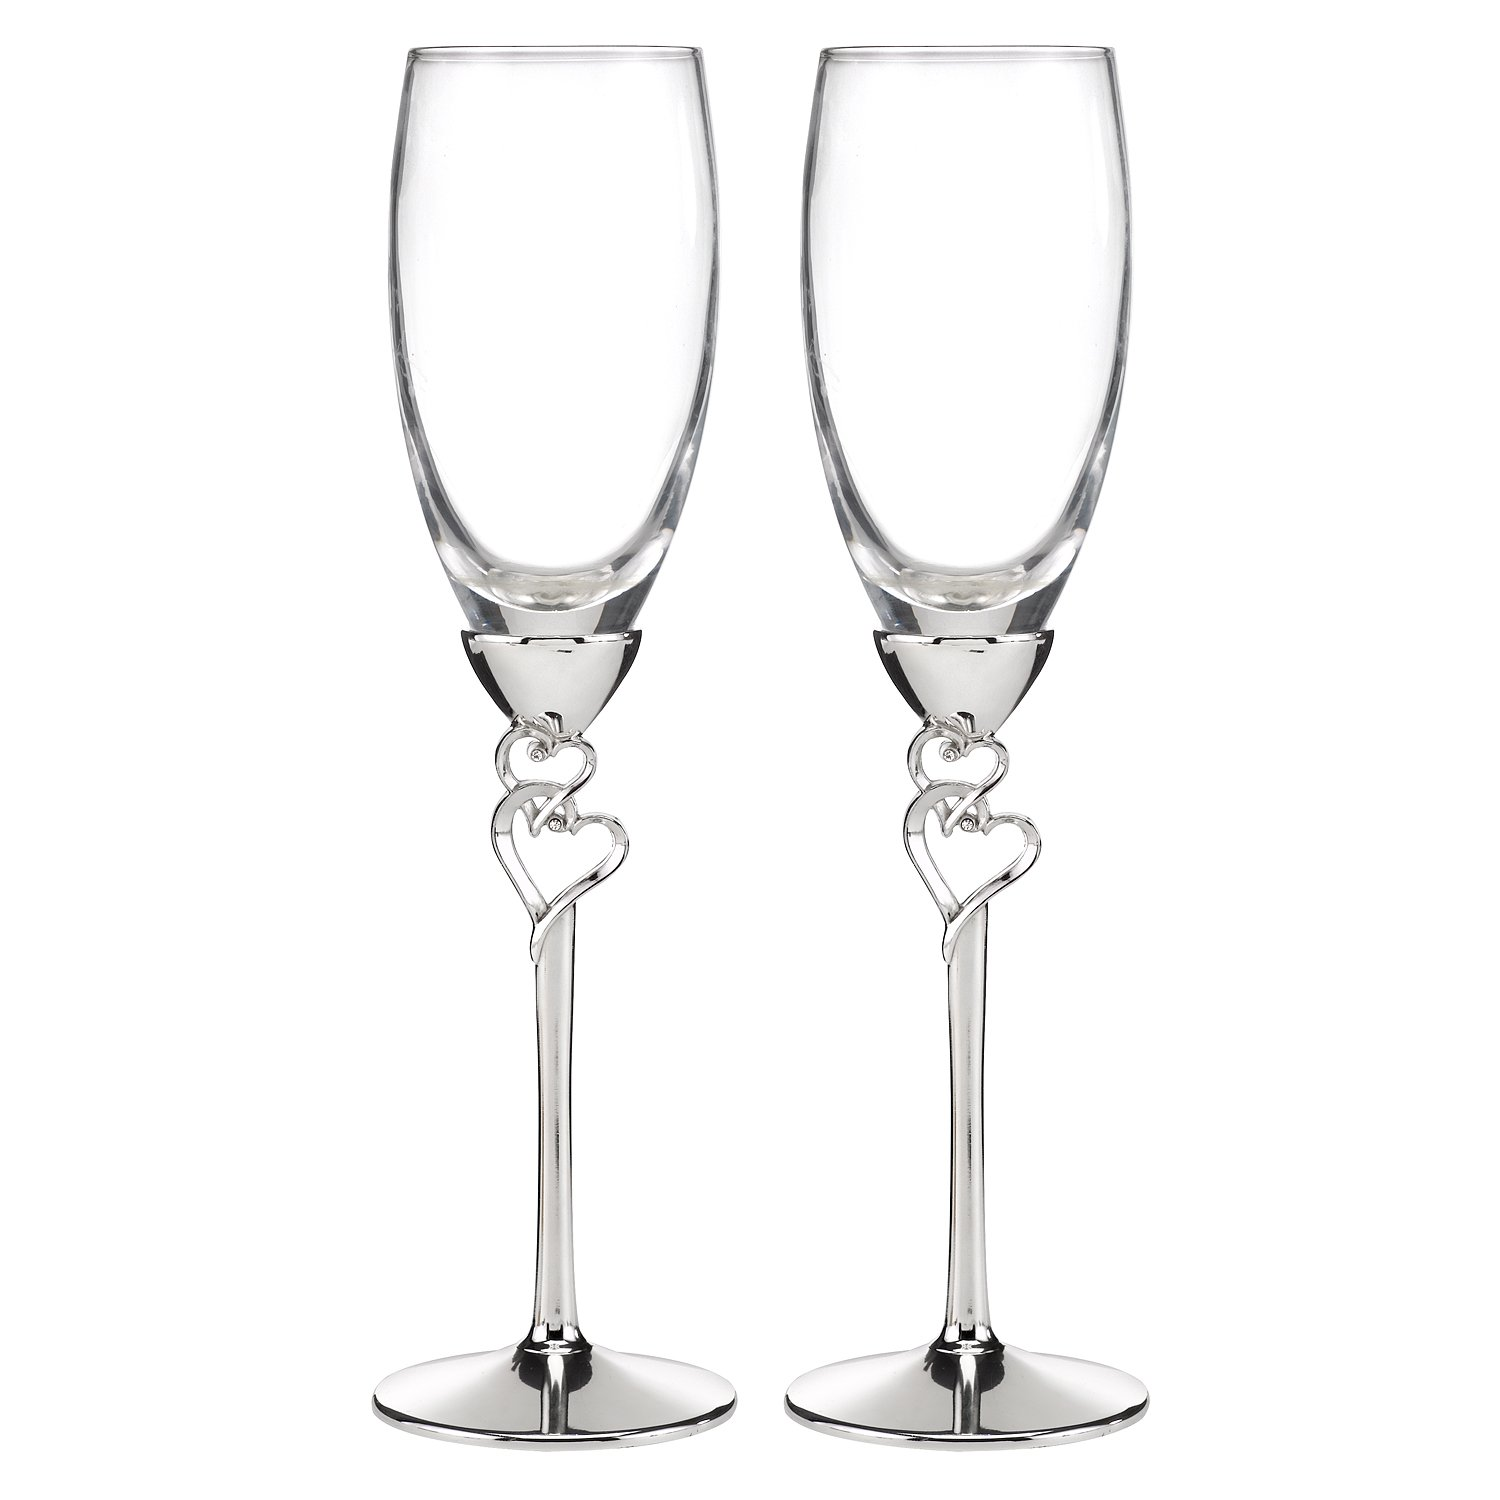 Hortense B. Hewitt Wedding Accessories Entwined Hearts Silver-Plated Champagne Flutes, Set of 2 10011